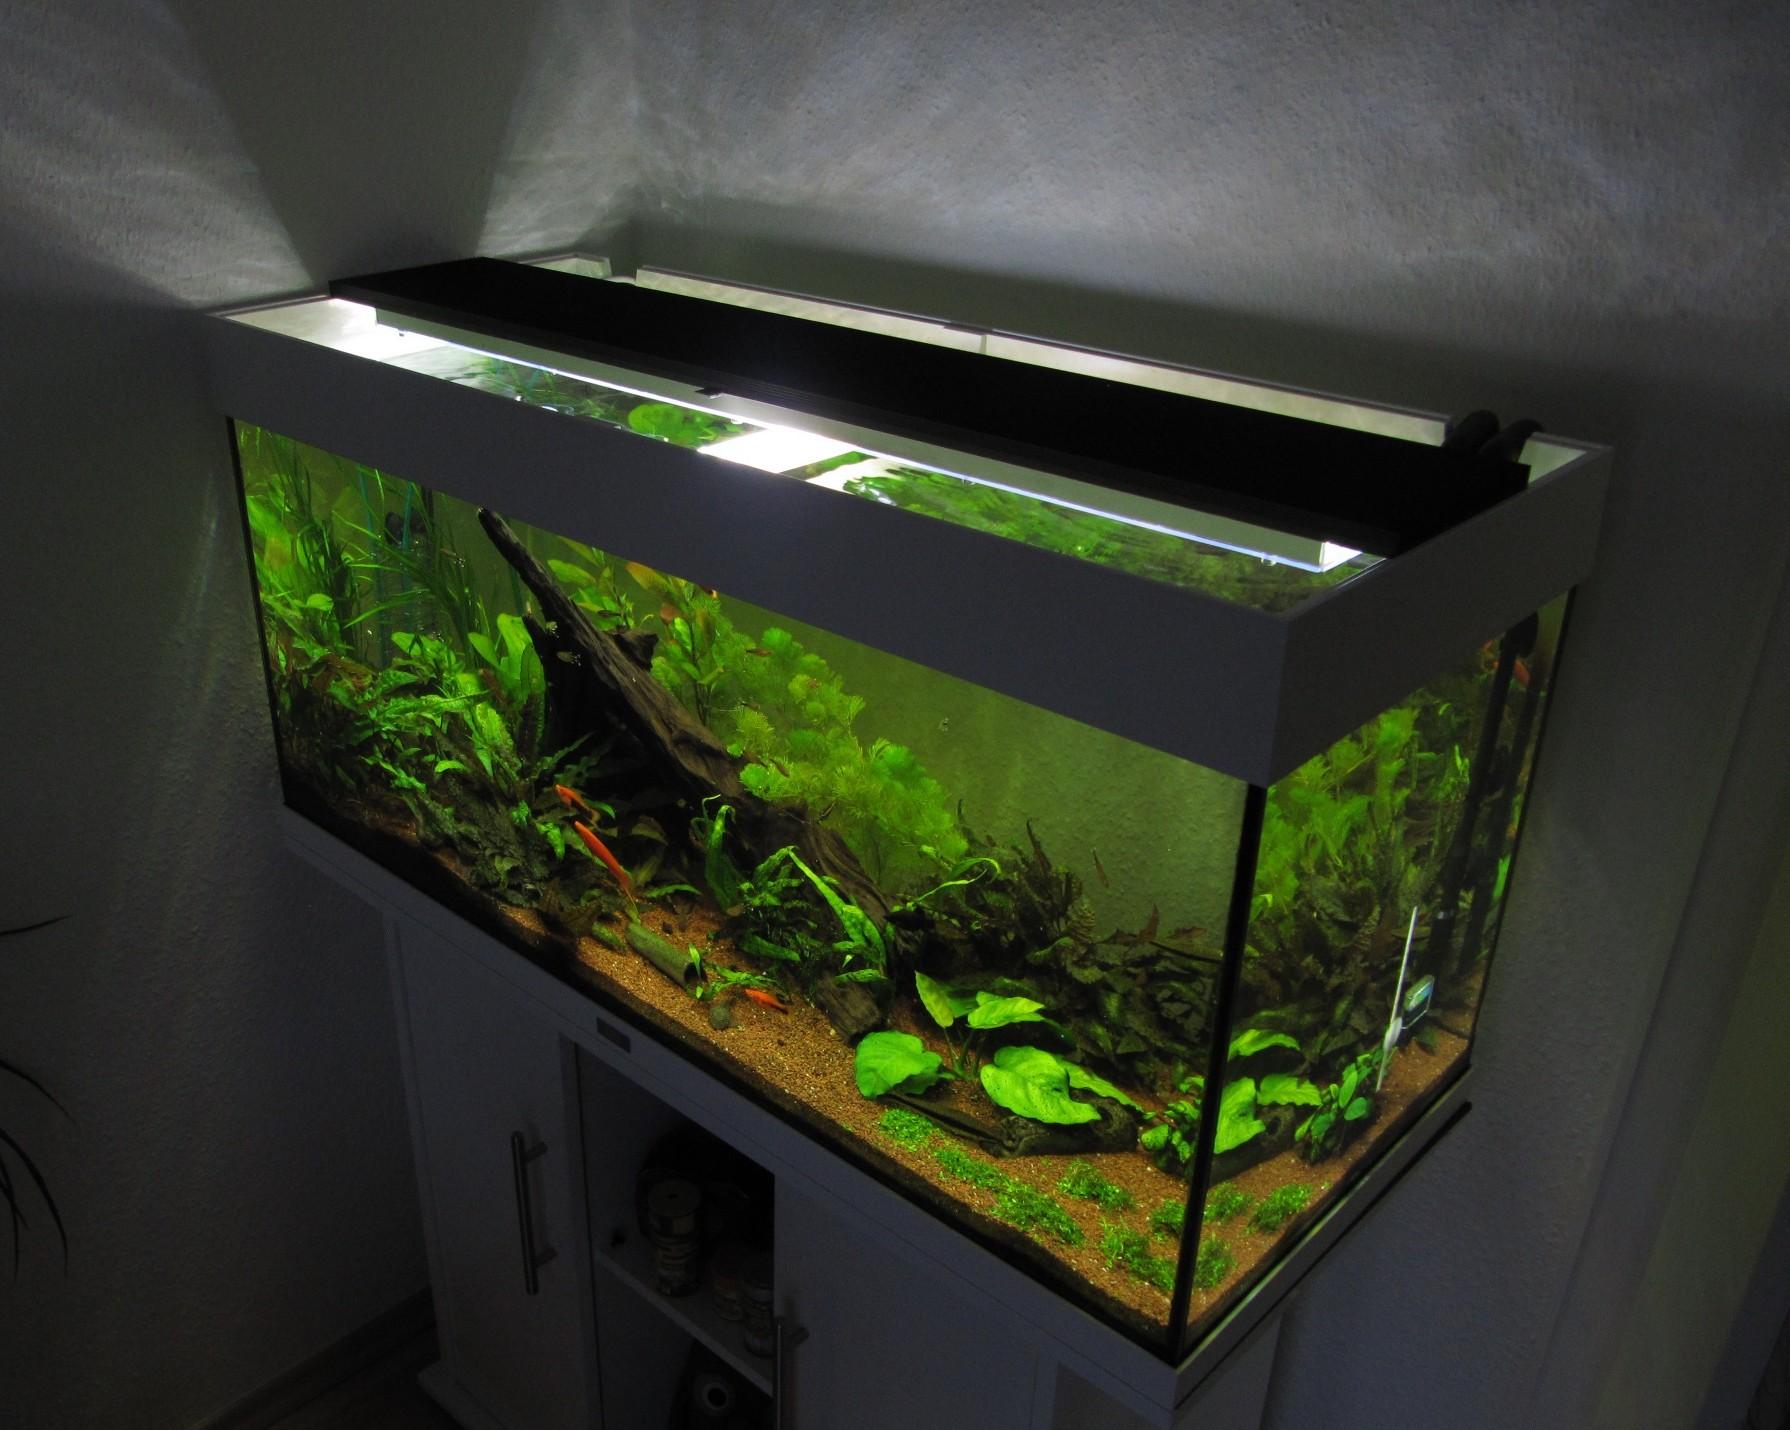 aquarium led beleuchtung selber bauen schullebernd 39 s. Black Bedroom Furniture Sets. Home Design Ideas